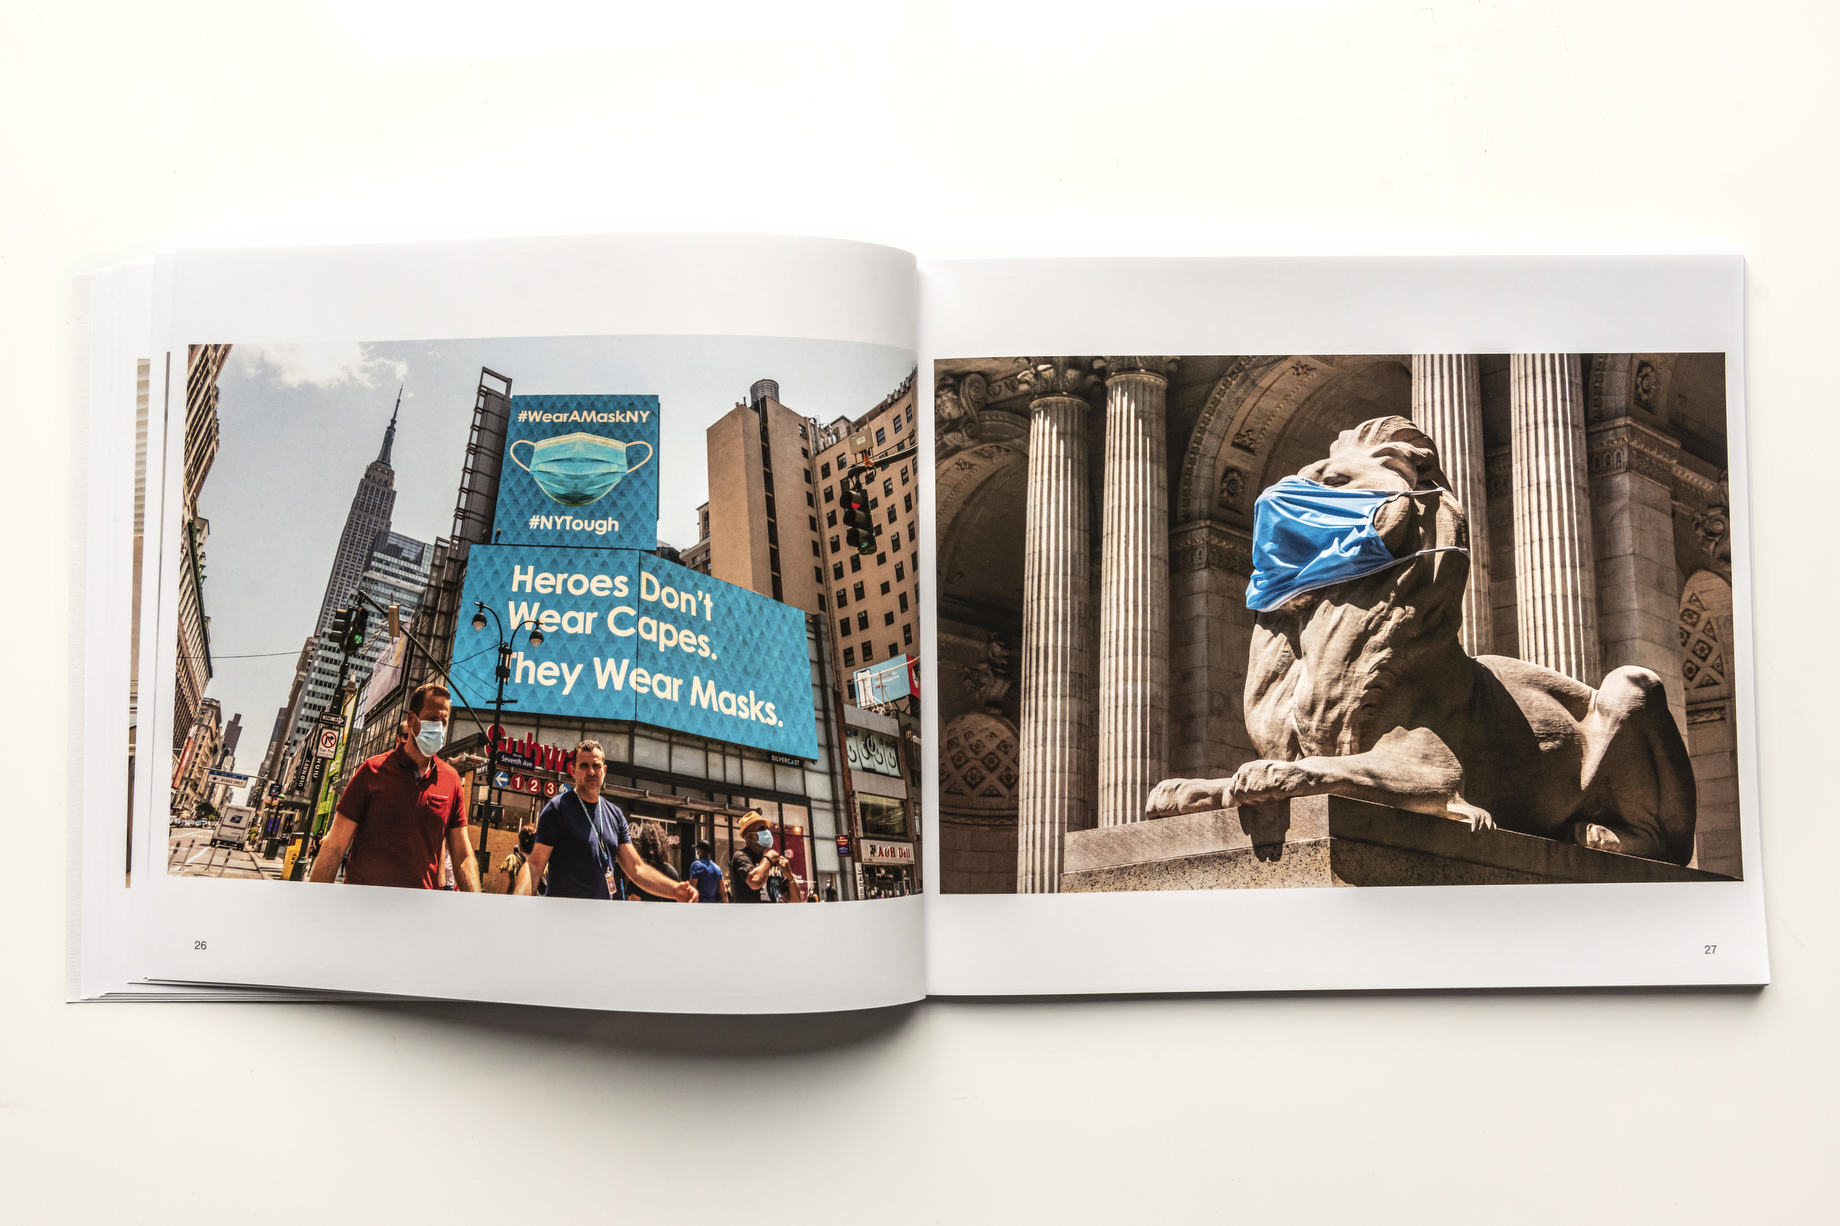 Keep_Going_New_York_book_2o16.JPG